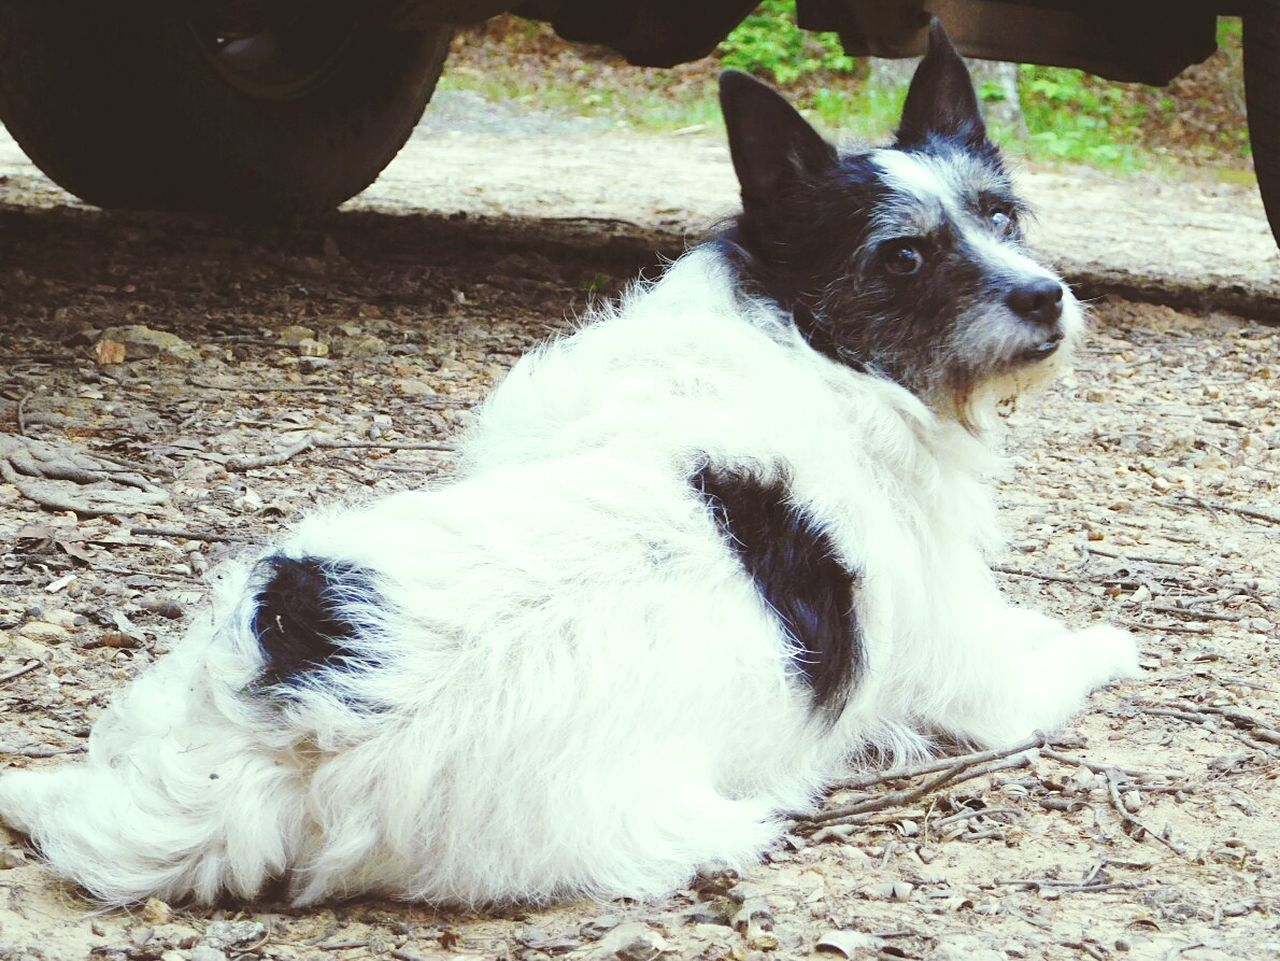 My Scampers Domestic Animals Mammal Animal Themes One Animal Pets Lying Down Animal Outdoors Day No People Close-up The Great Outdoors - 2017 EyeEm Awards Doggy Love Dogs